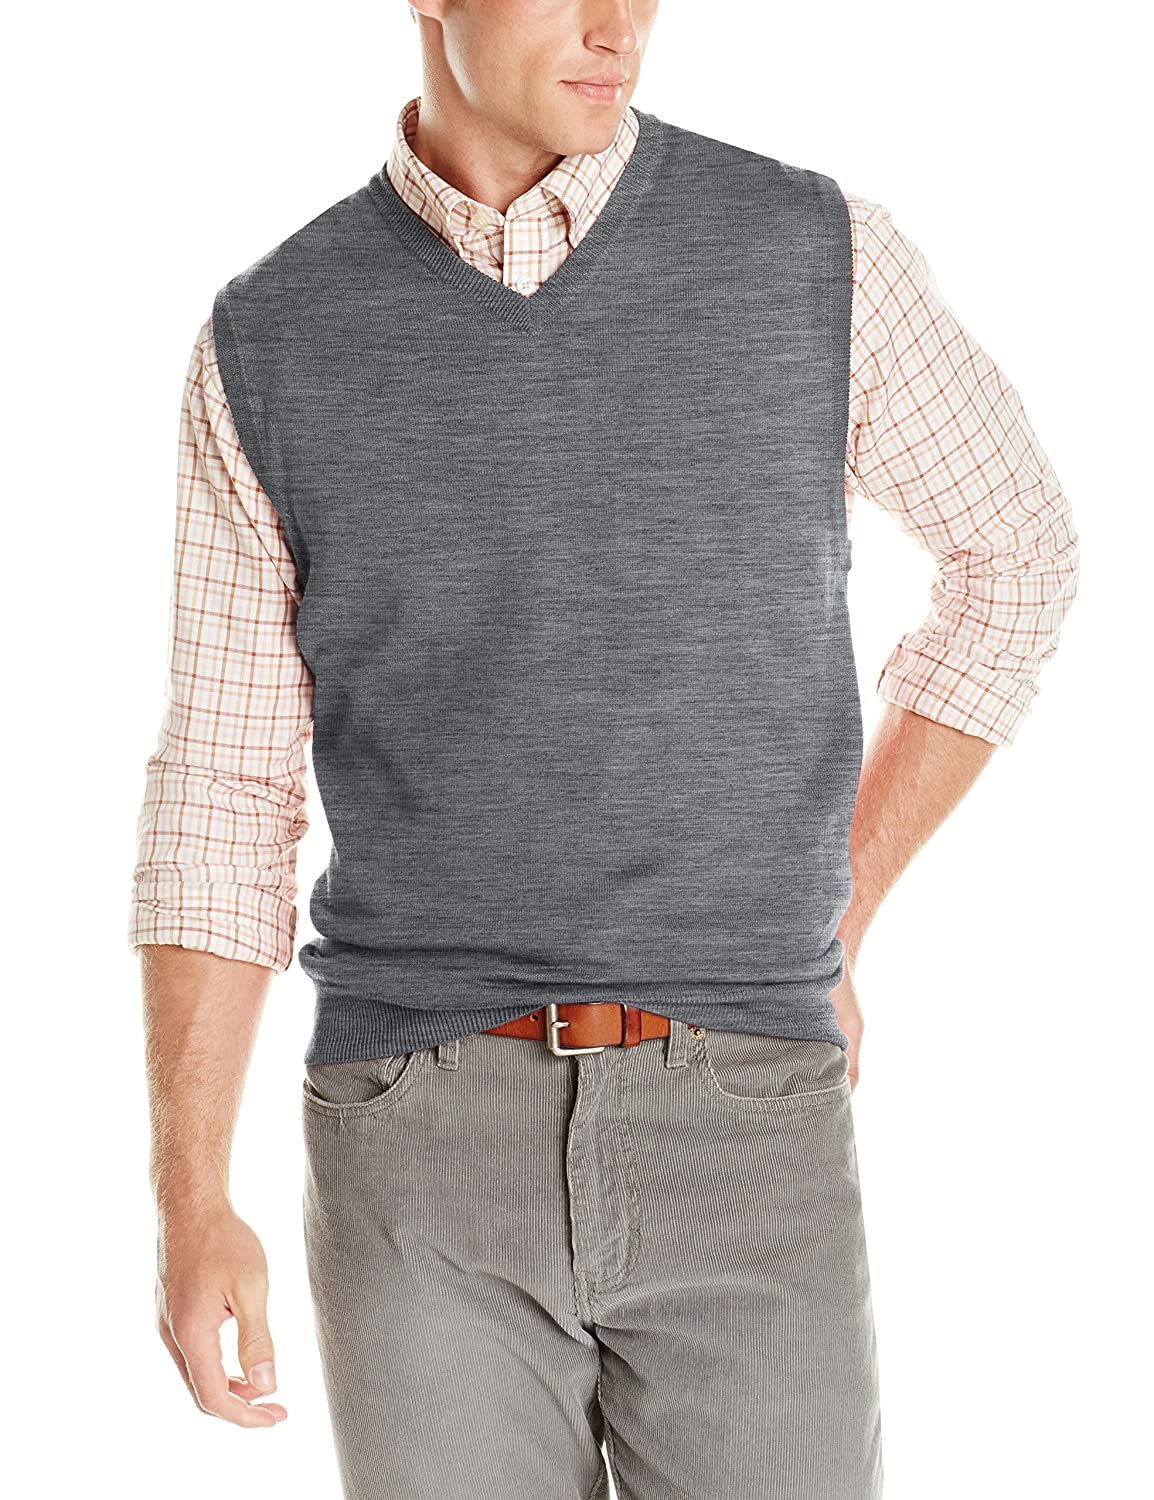 Cutter & Buck Men's Douglas V-Neck Sweater Vest at Amazon Men's ...